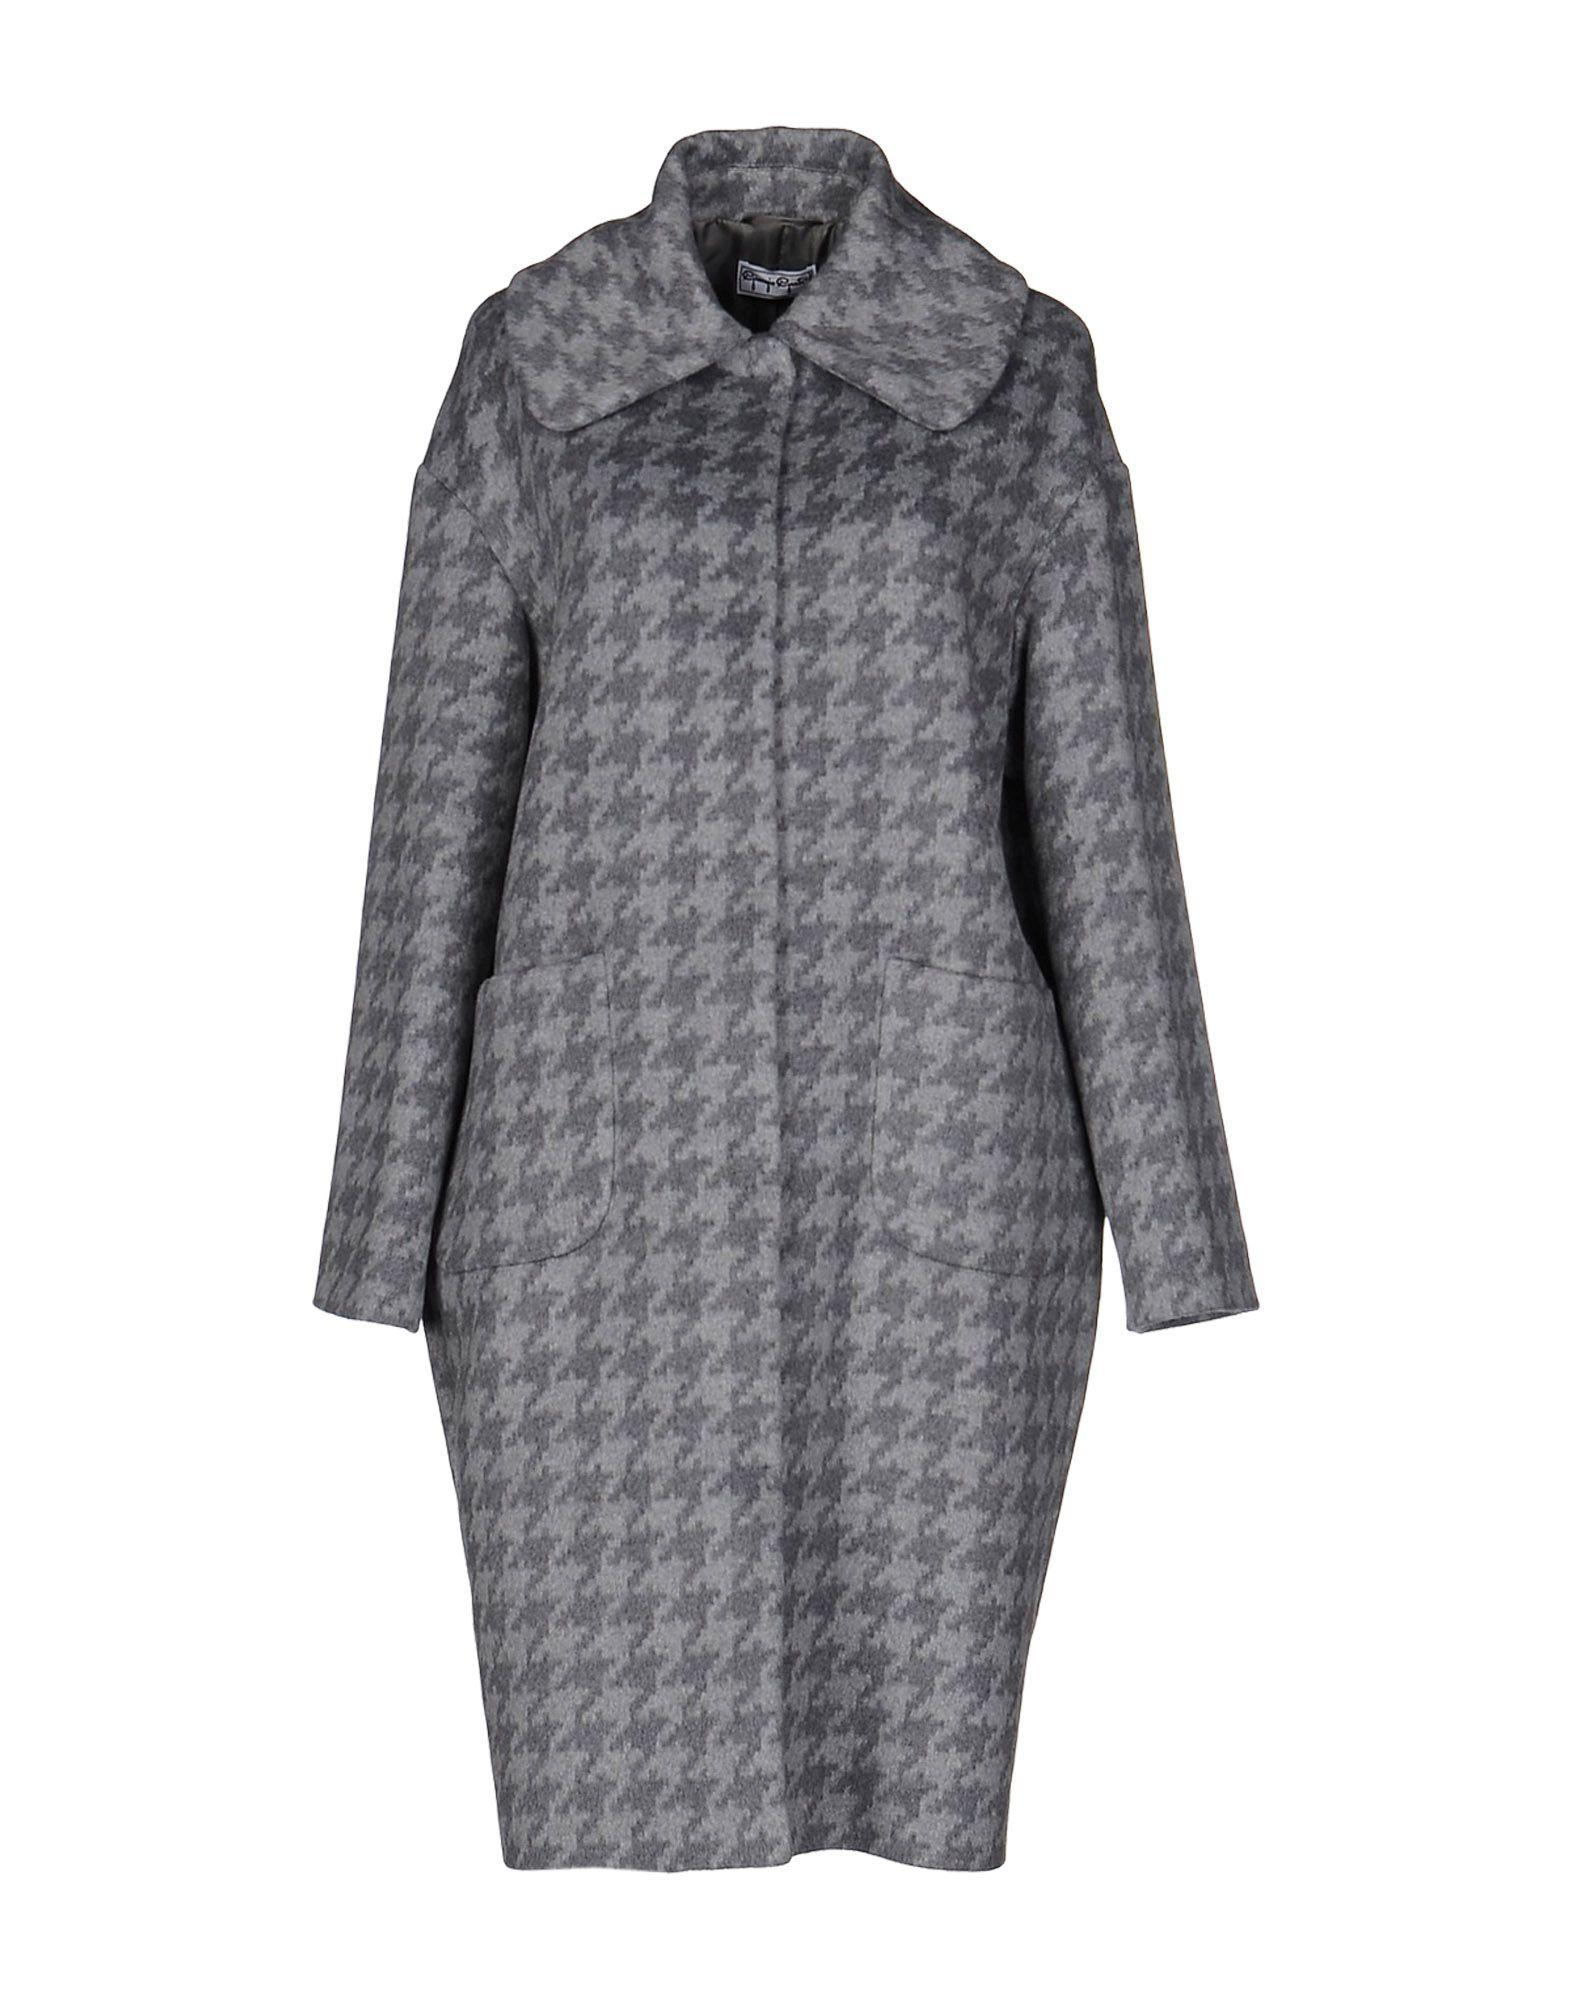 Giorgio Grati Coat In Light Grey